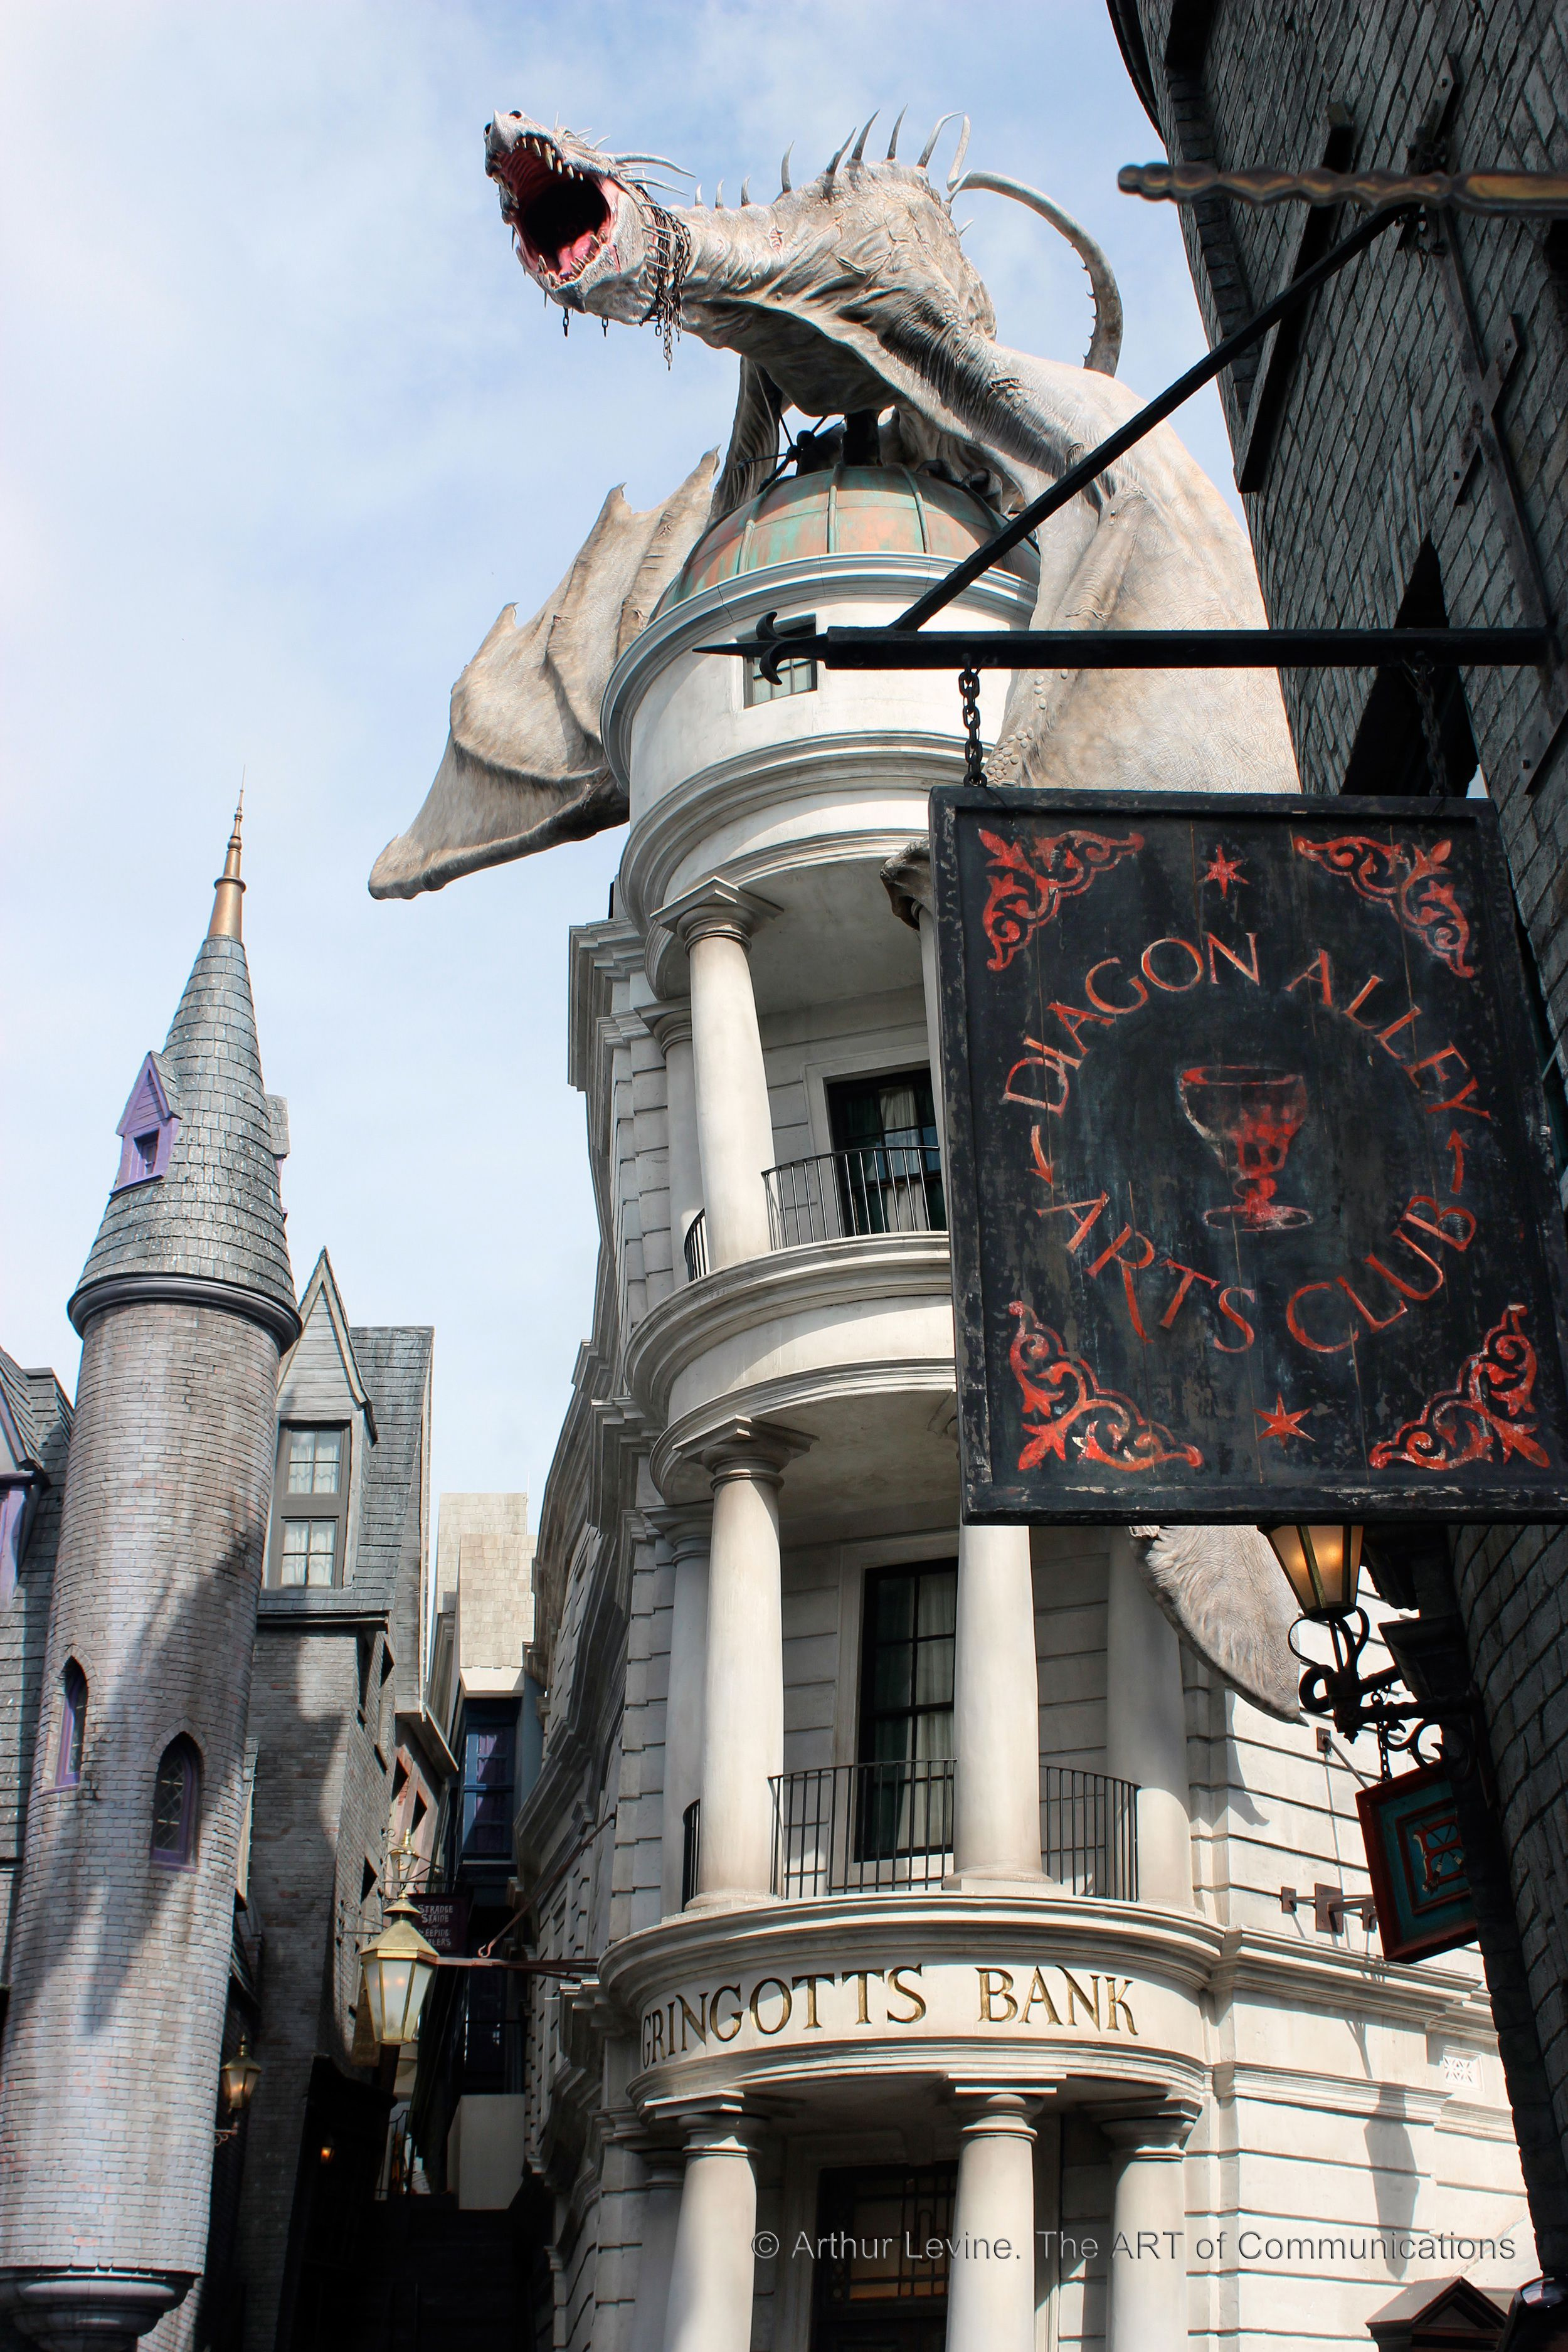 Diagon Alley - Photos of The Wizarding World of Harry Potter